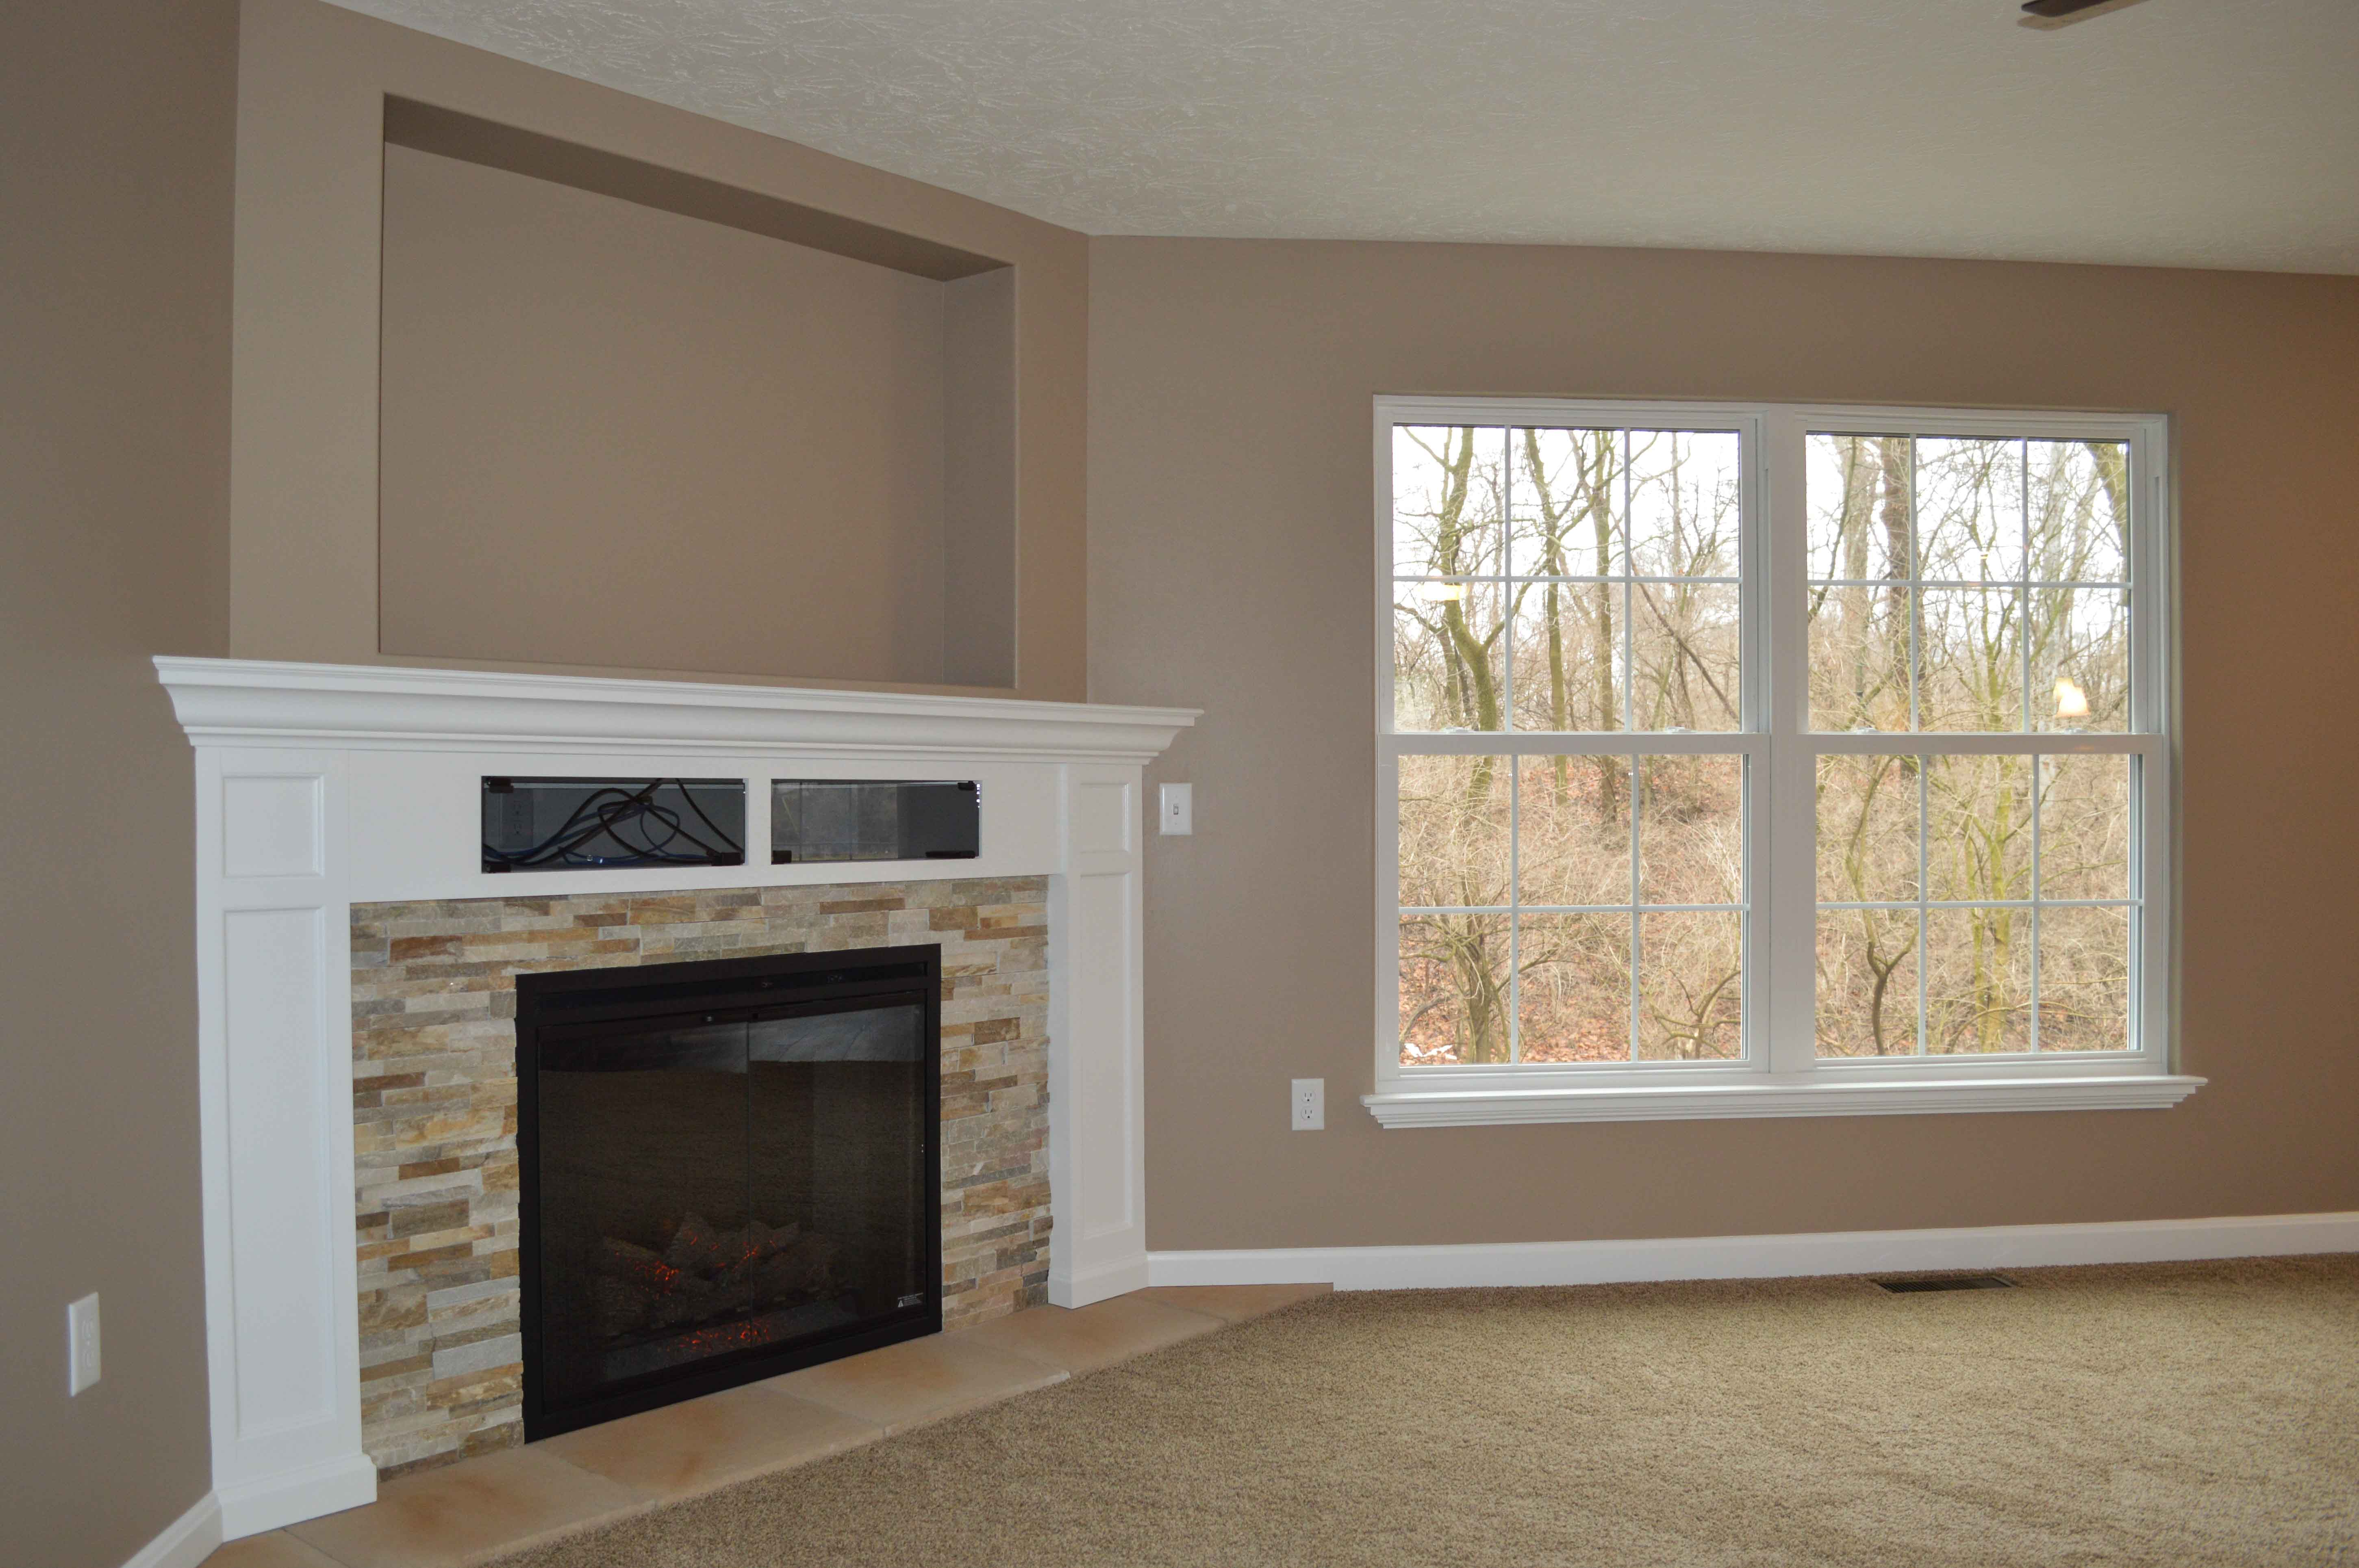 Corner gas fireplace with glass-door component boxes in surrounding trim